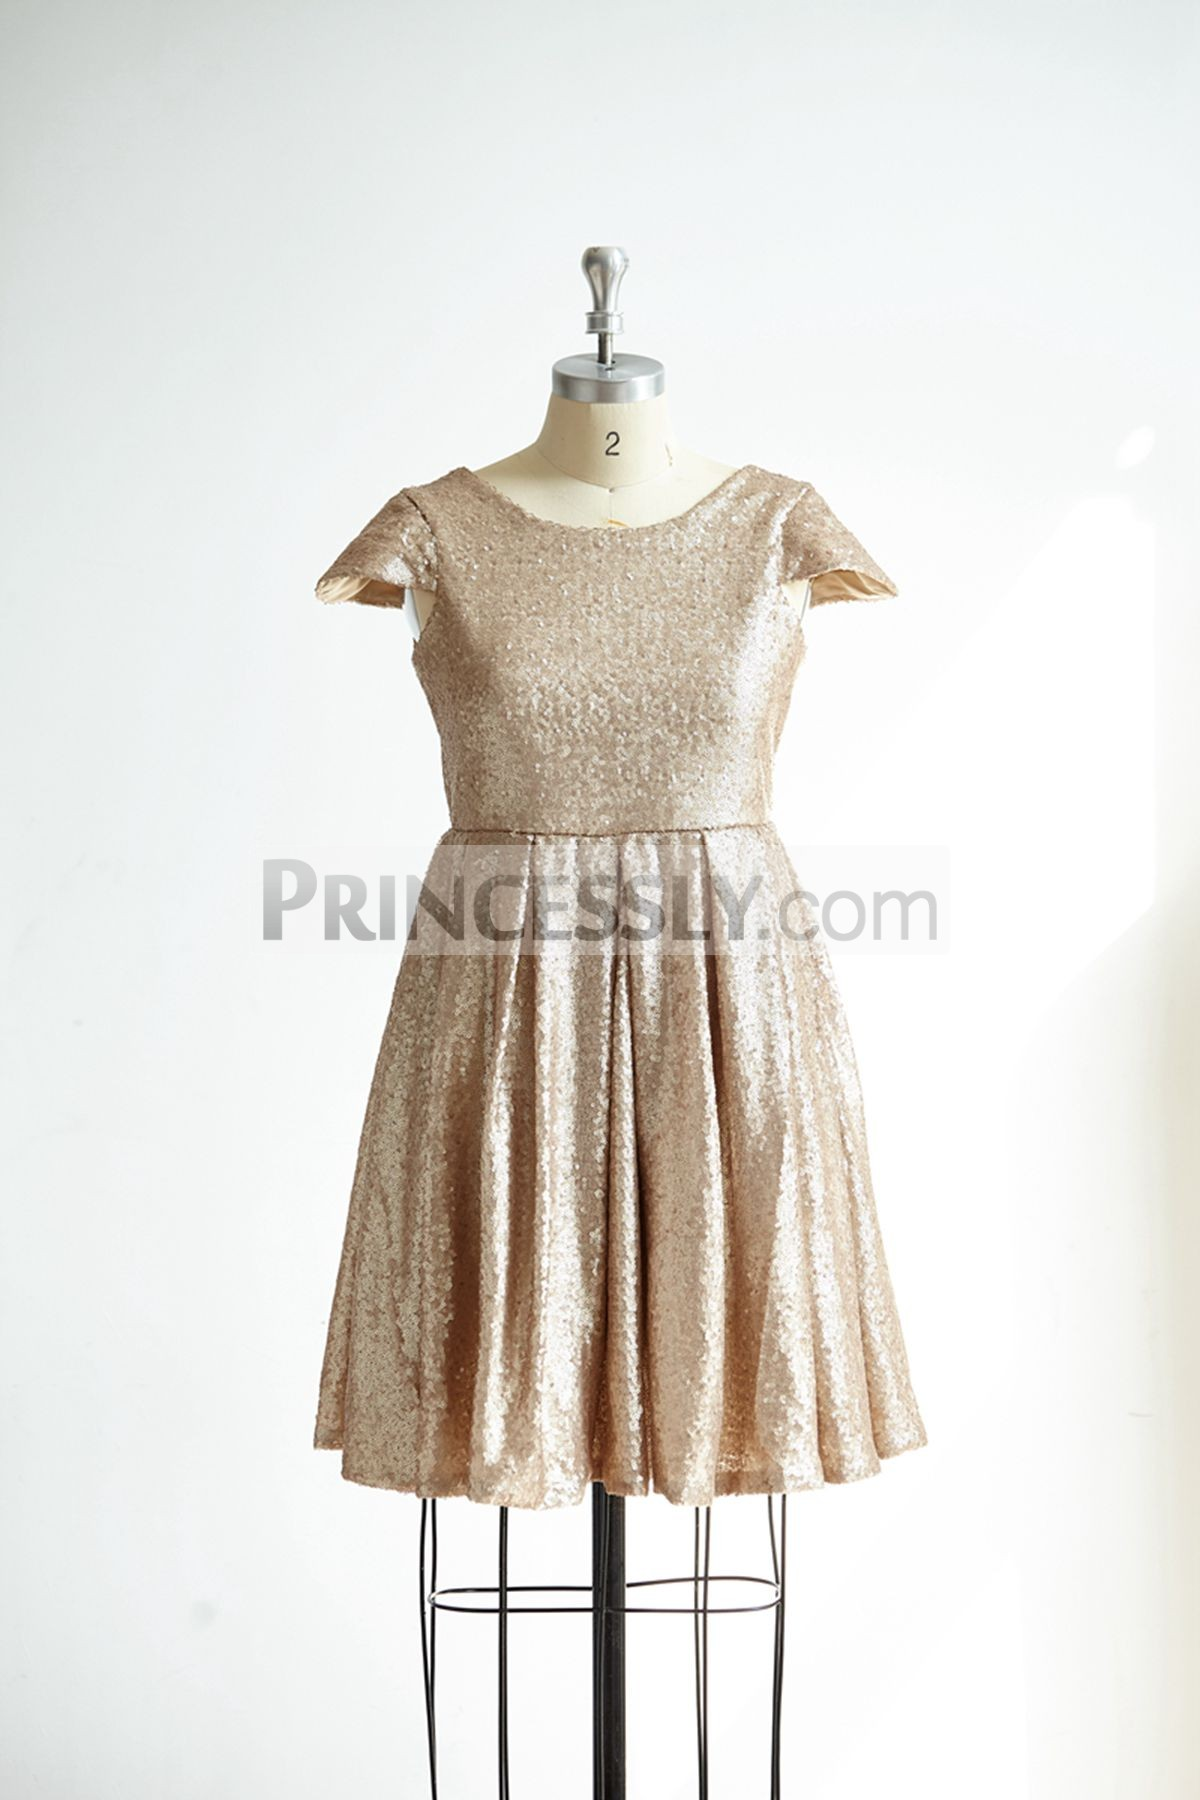 Princessly.com-K1000307-Cap Sleeves Champagne Gold Sequin Short Prom Party Cocktail Dress-31